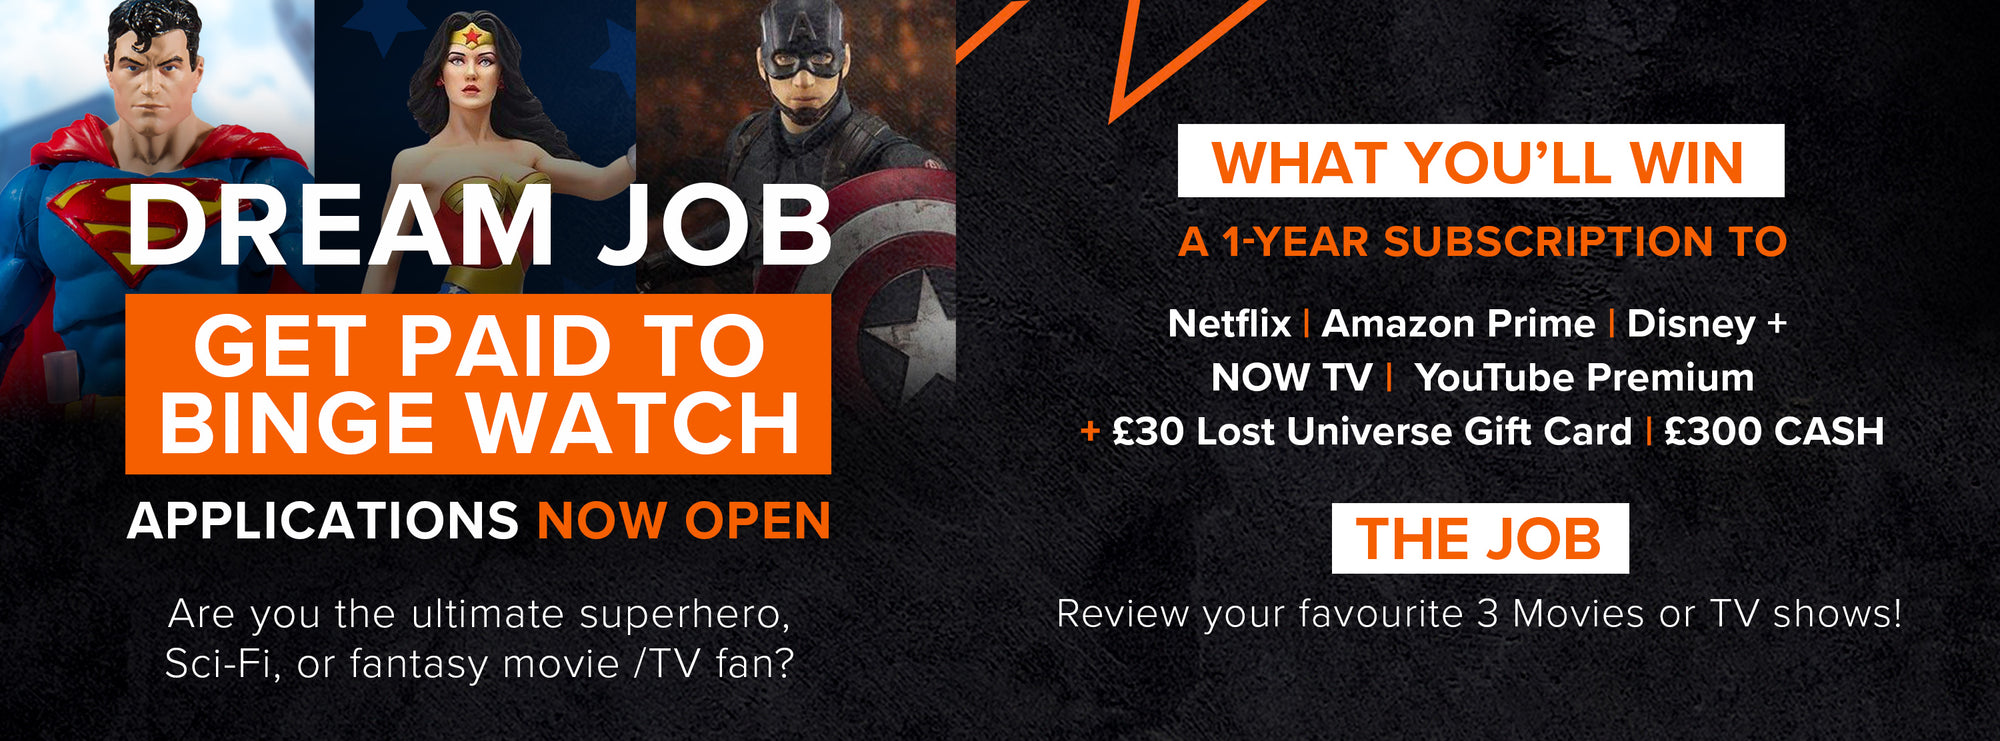 BINGE-WATCHER DREAM JOB - APPLICATIONS NOW CLOSED!